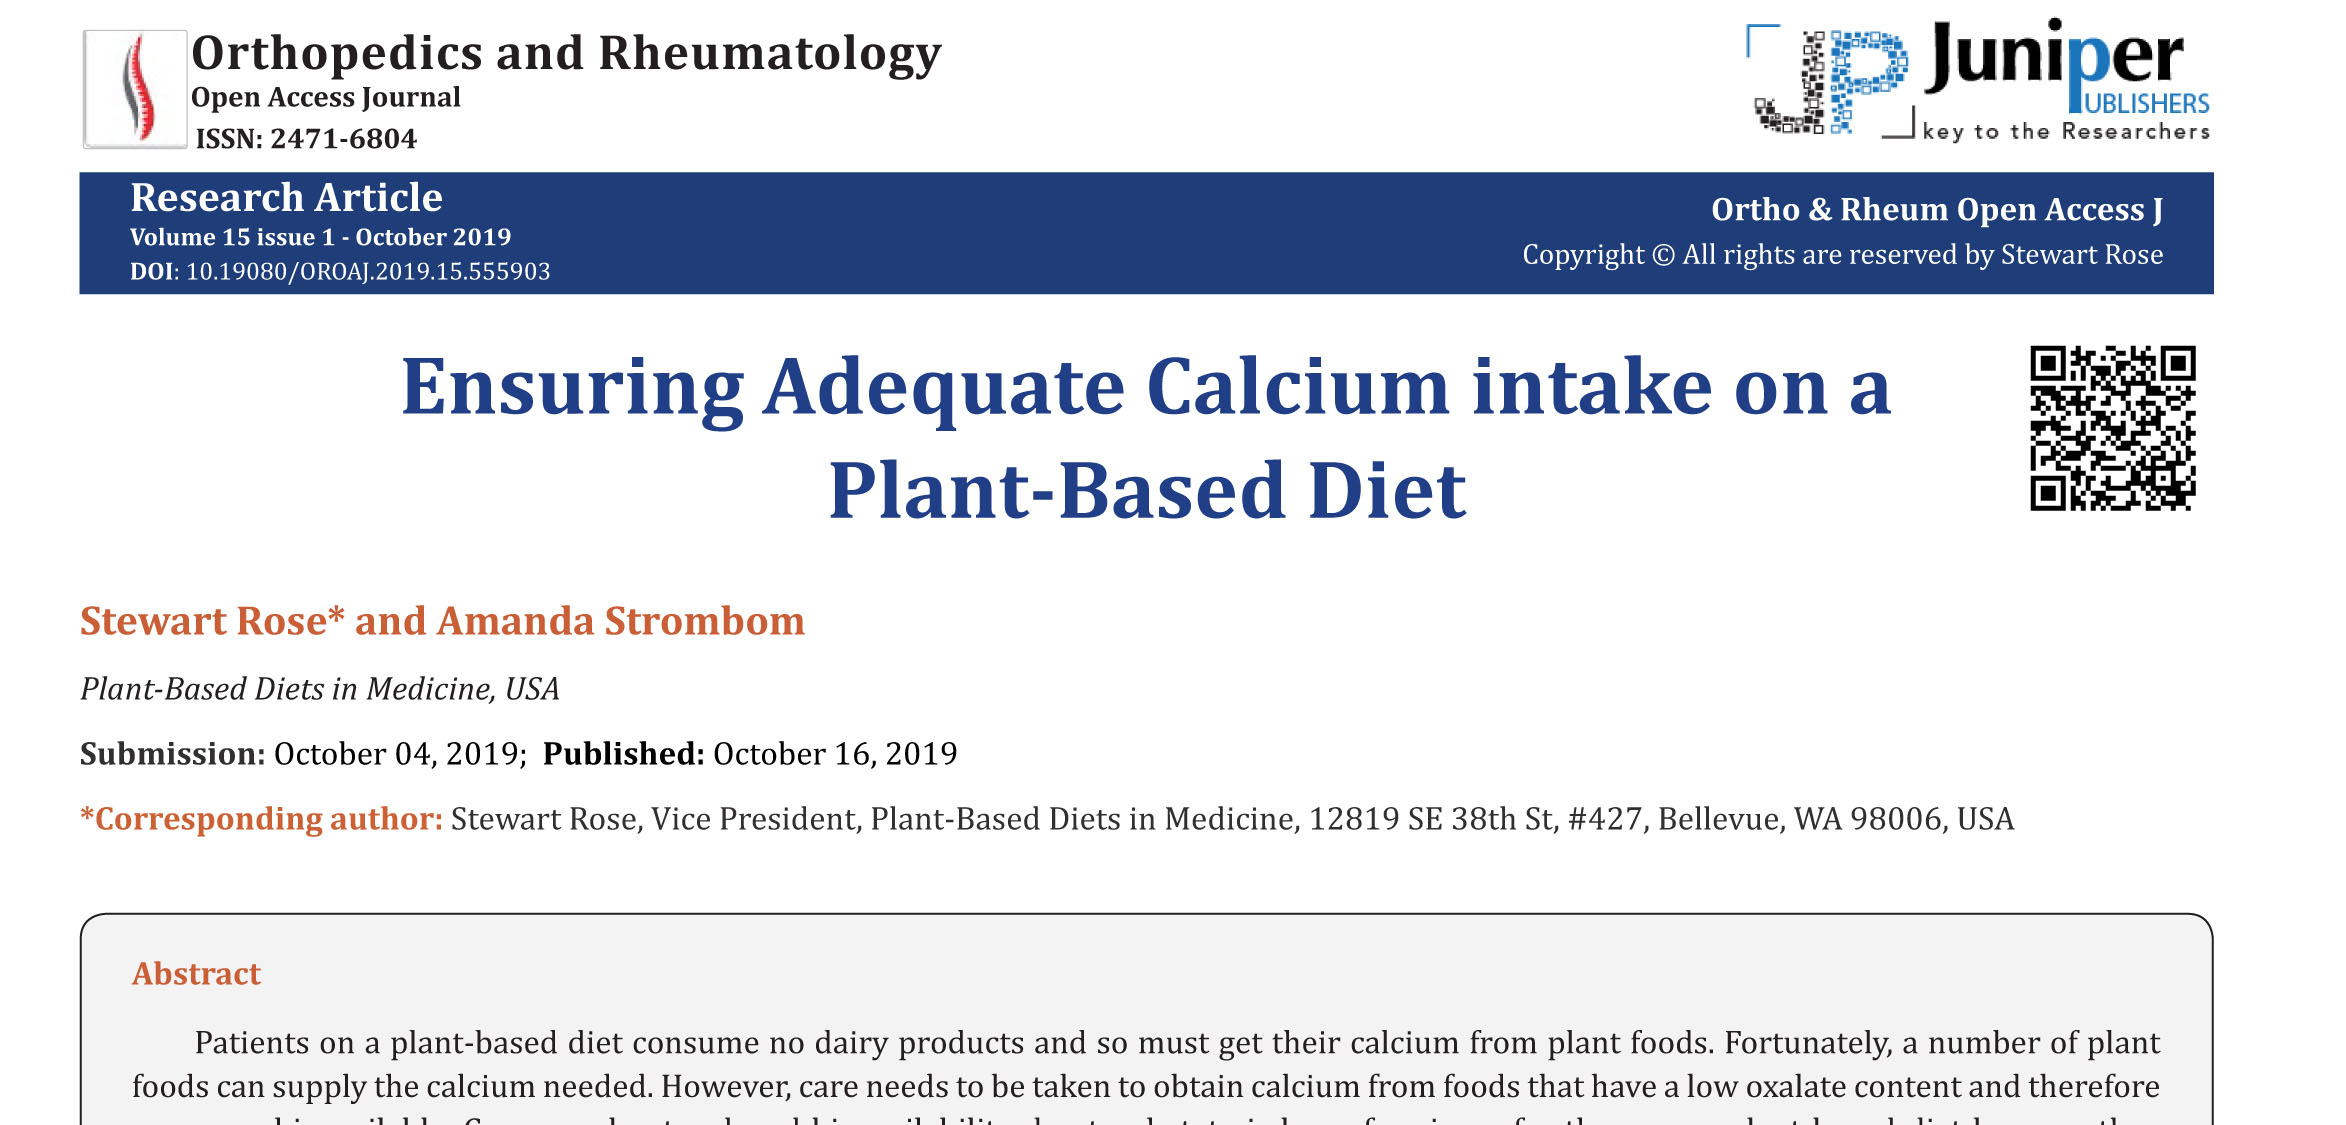 Ensuring Adequate Calcium intake on a Plant-Based Diet